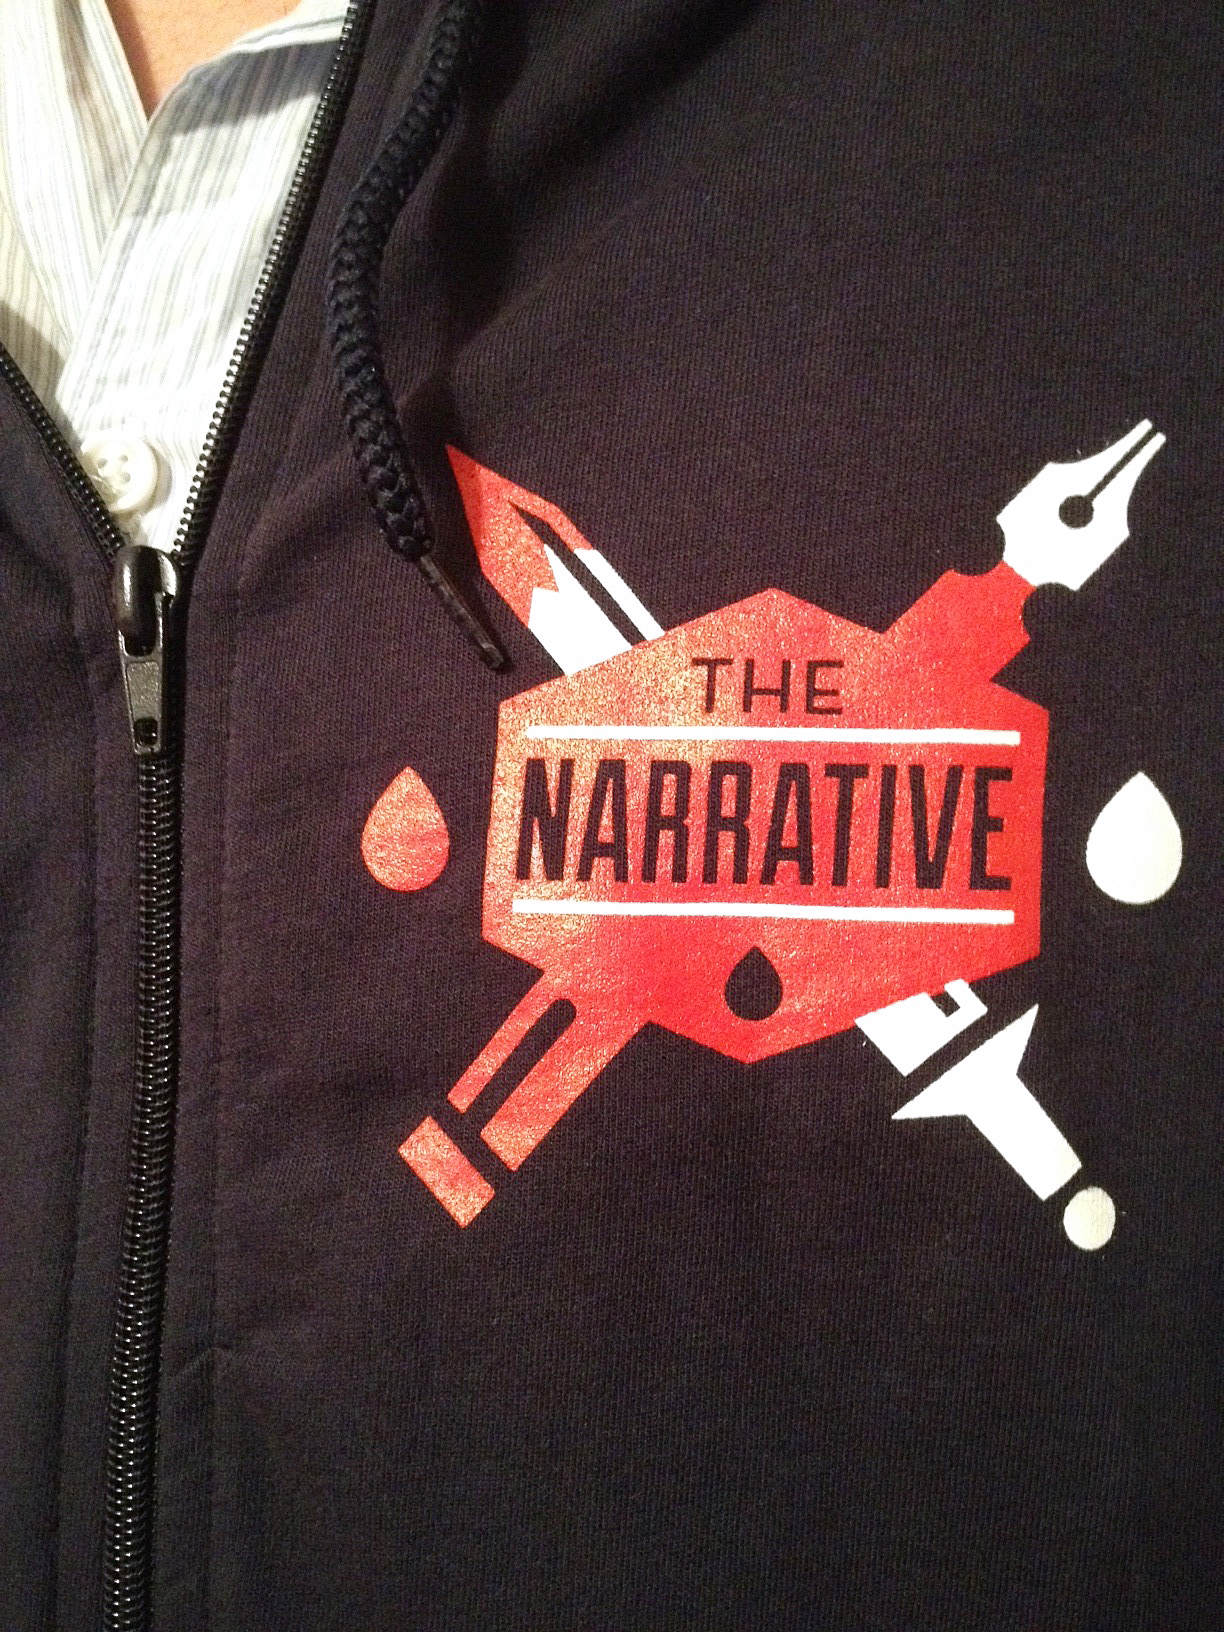 Check out the  Narrative  hoodie I designed!